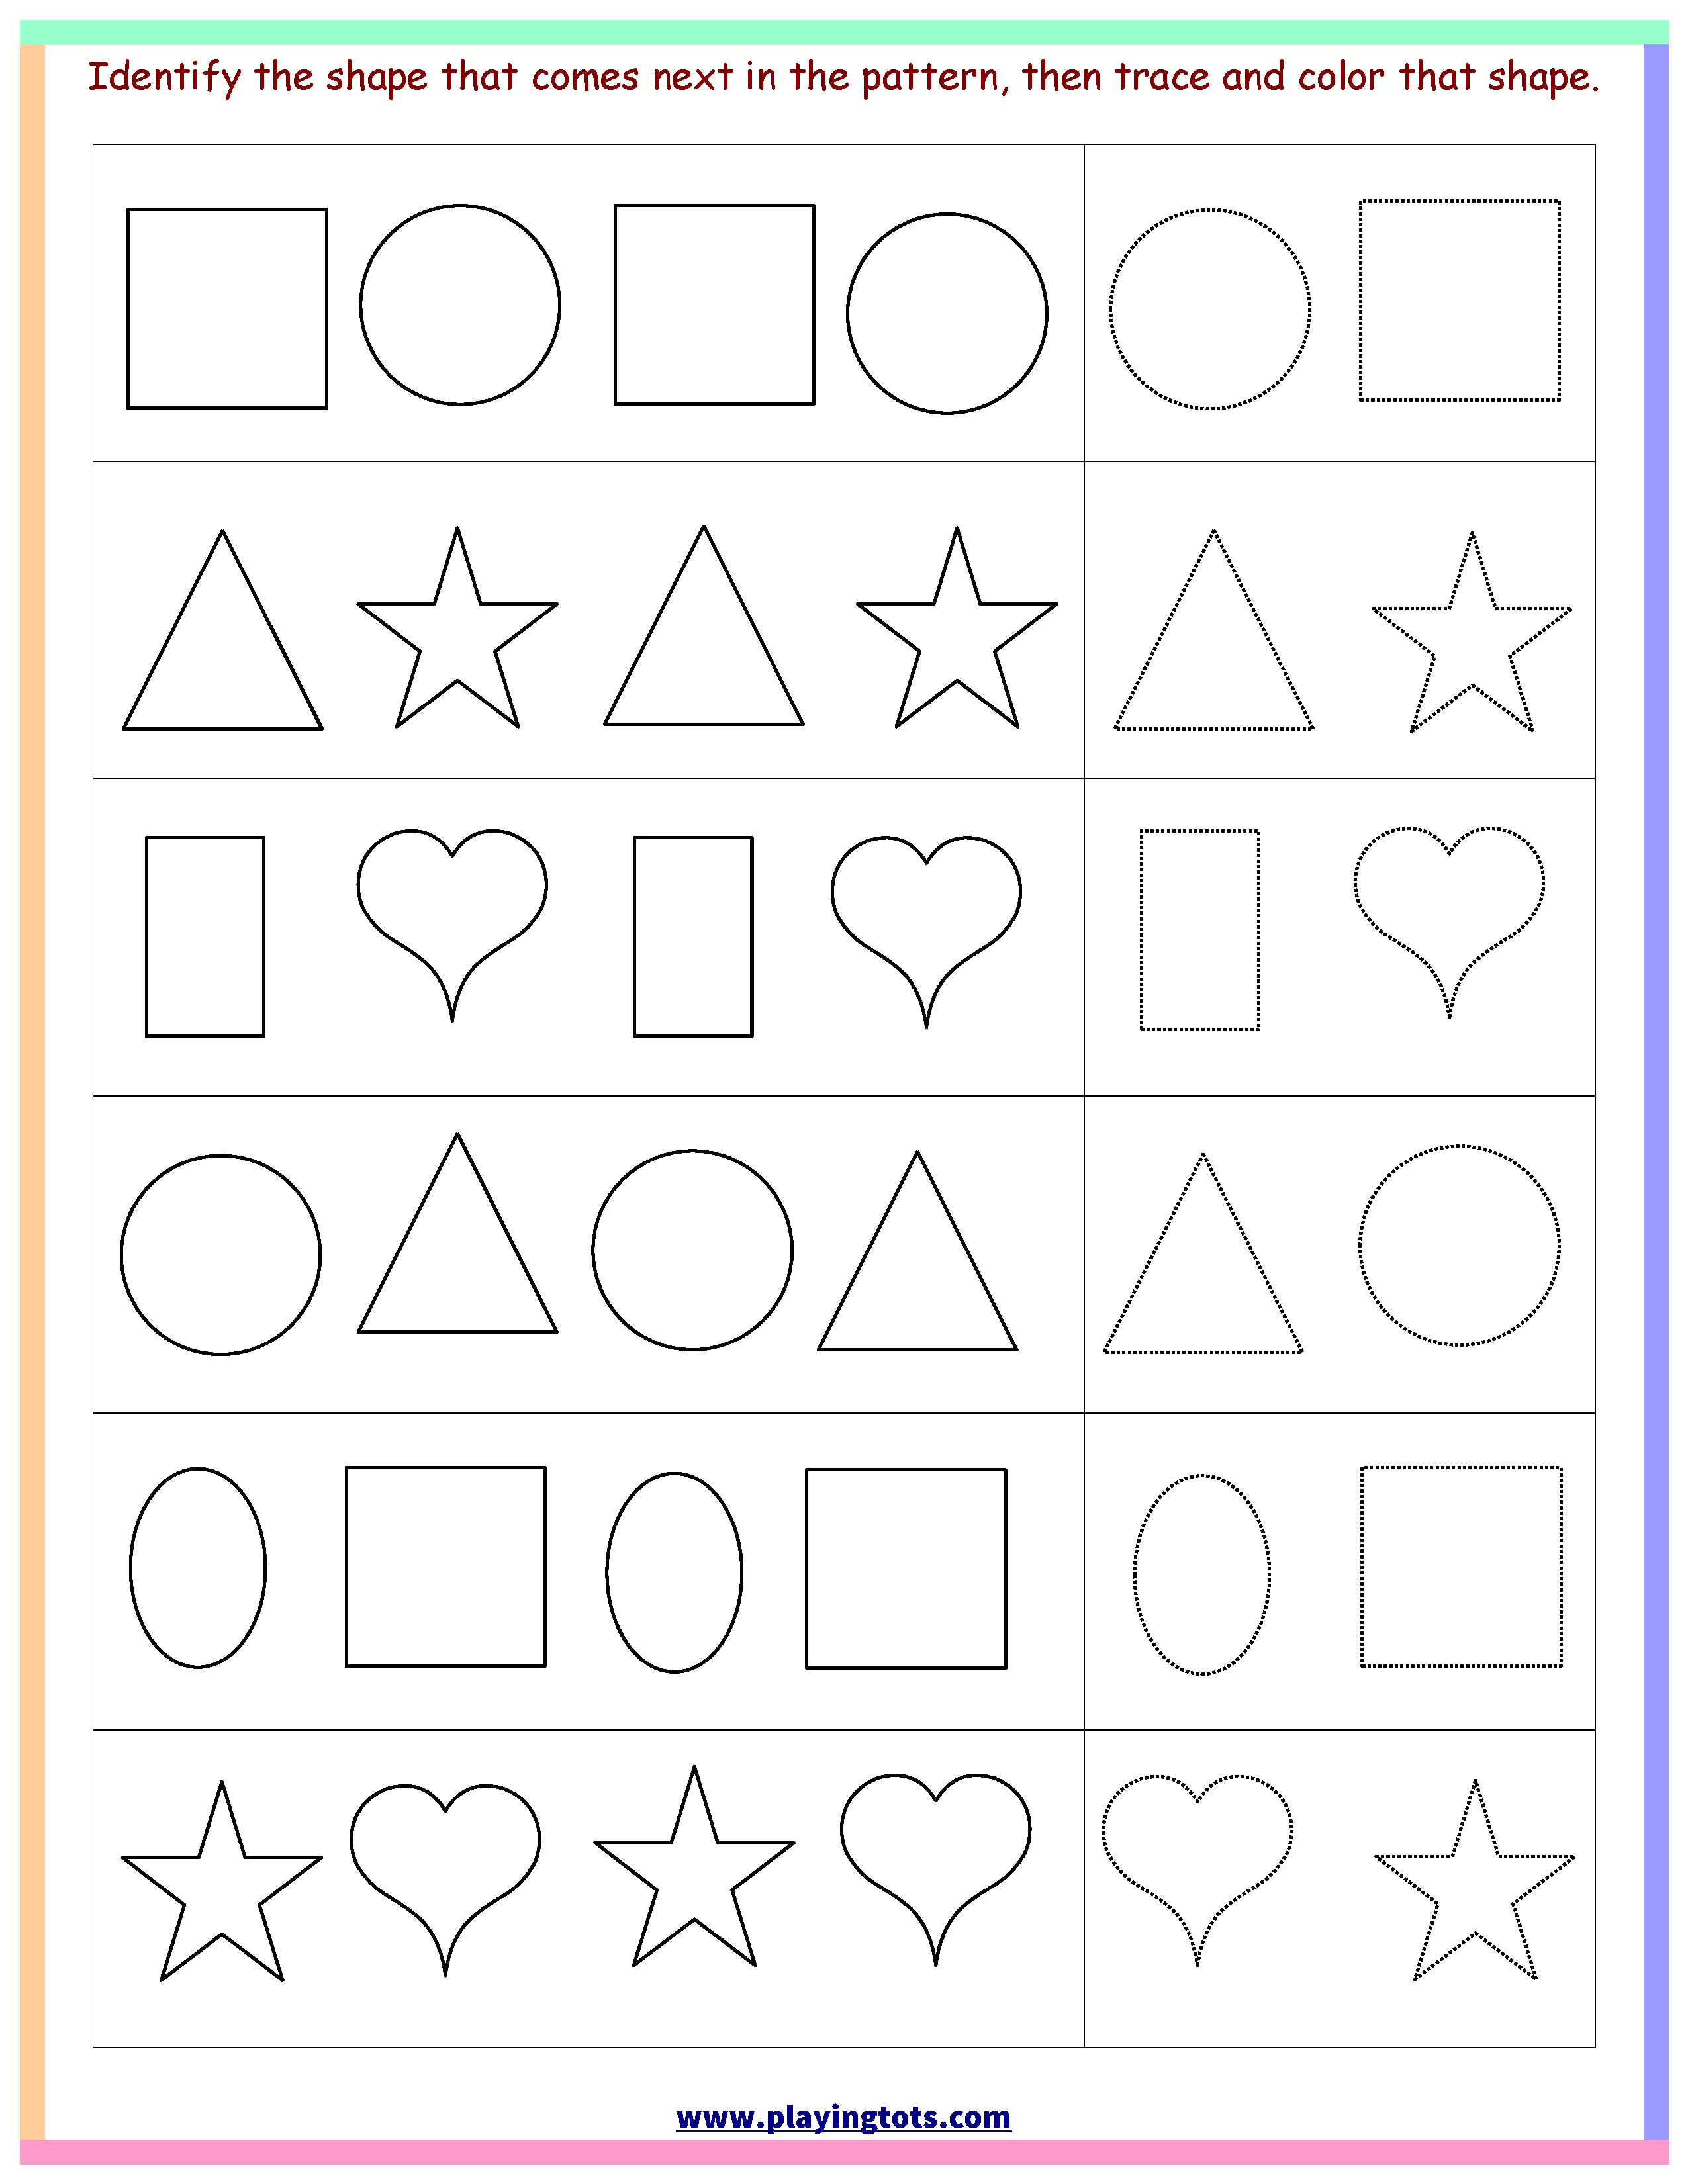 Worksheet,shapes,trace,color,pattern,free,printable,kids,toddler - Free Printable Toddler Worksheets